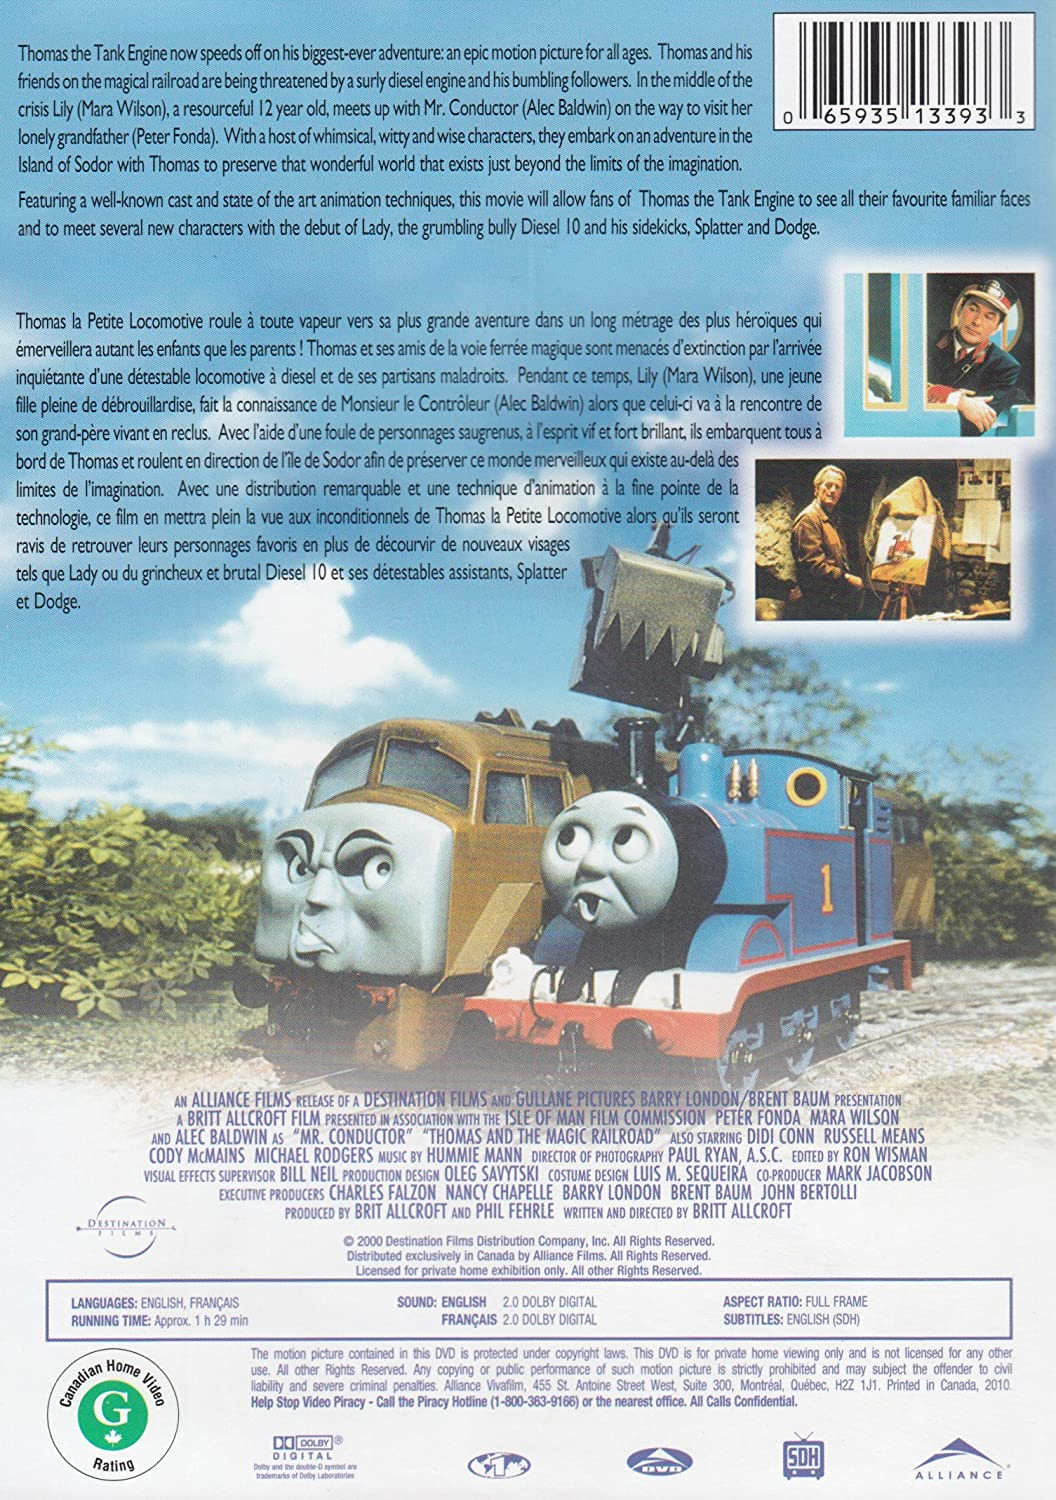 Amazon com: Thomas and the Magic Railroad: Alec Baldwin, Cody